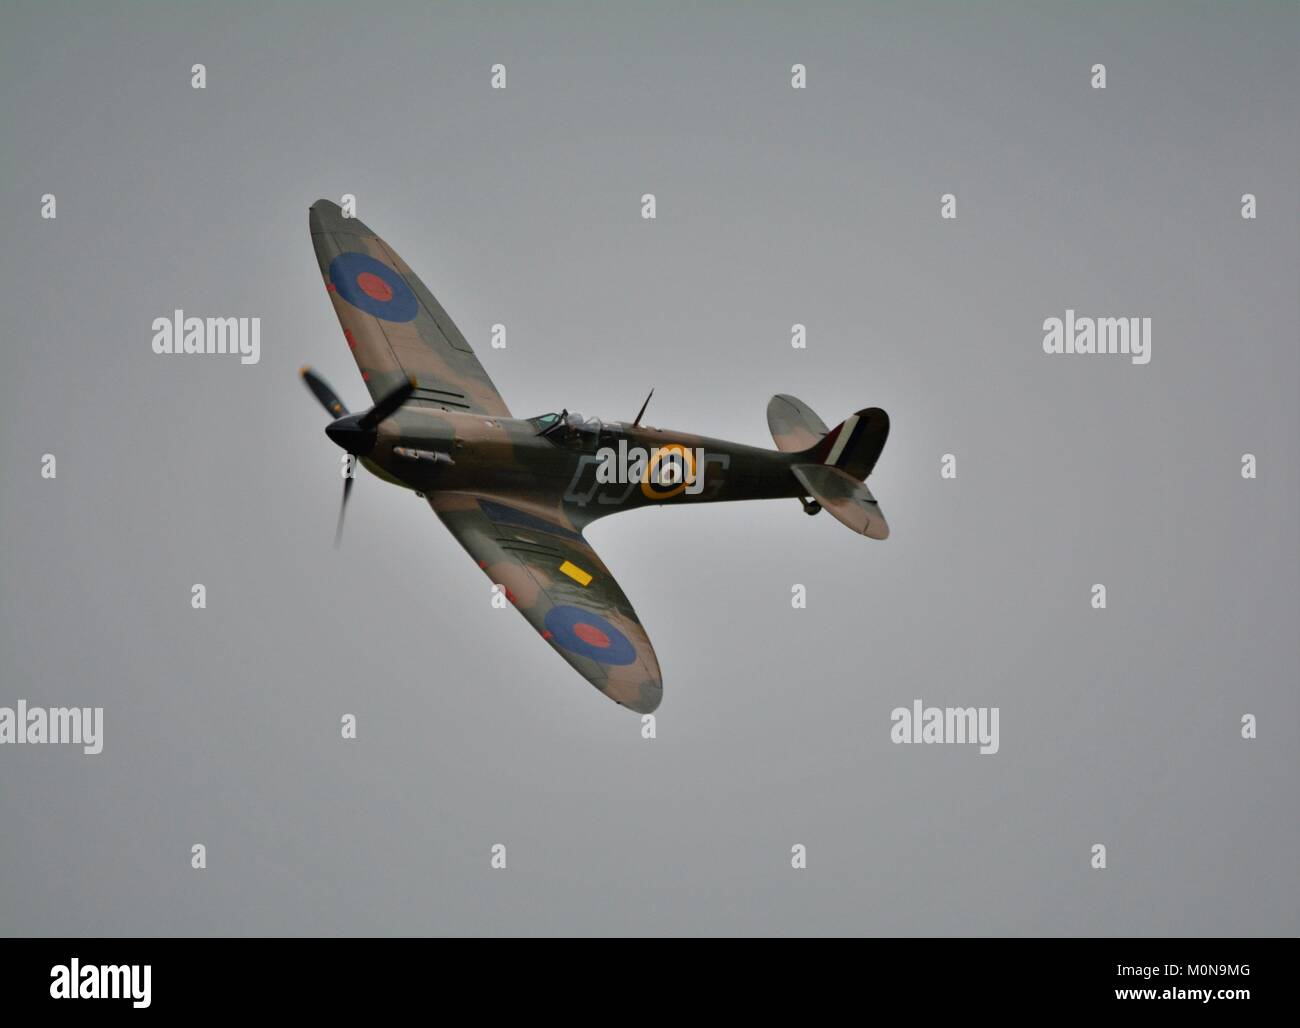 Supermarine Spitfire 11a world war 2 classic fighter airplane - Stock Image